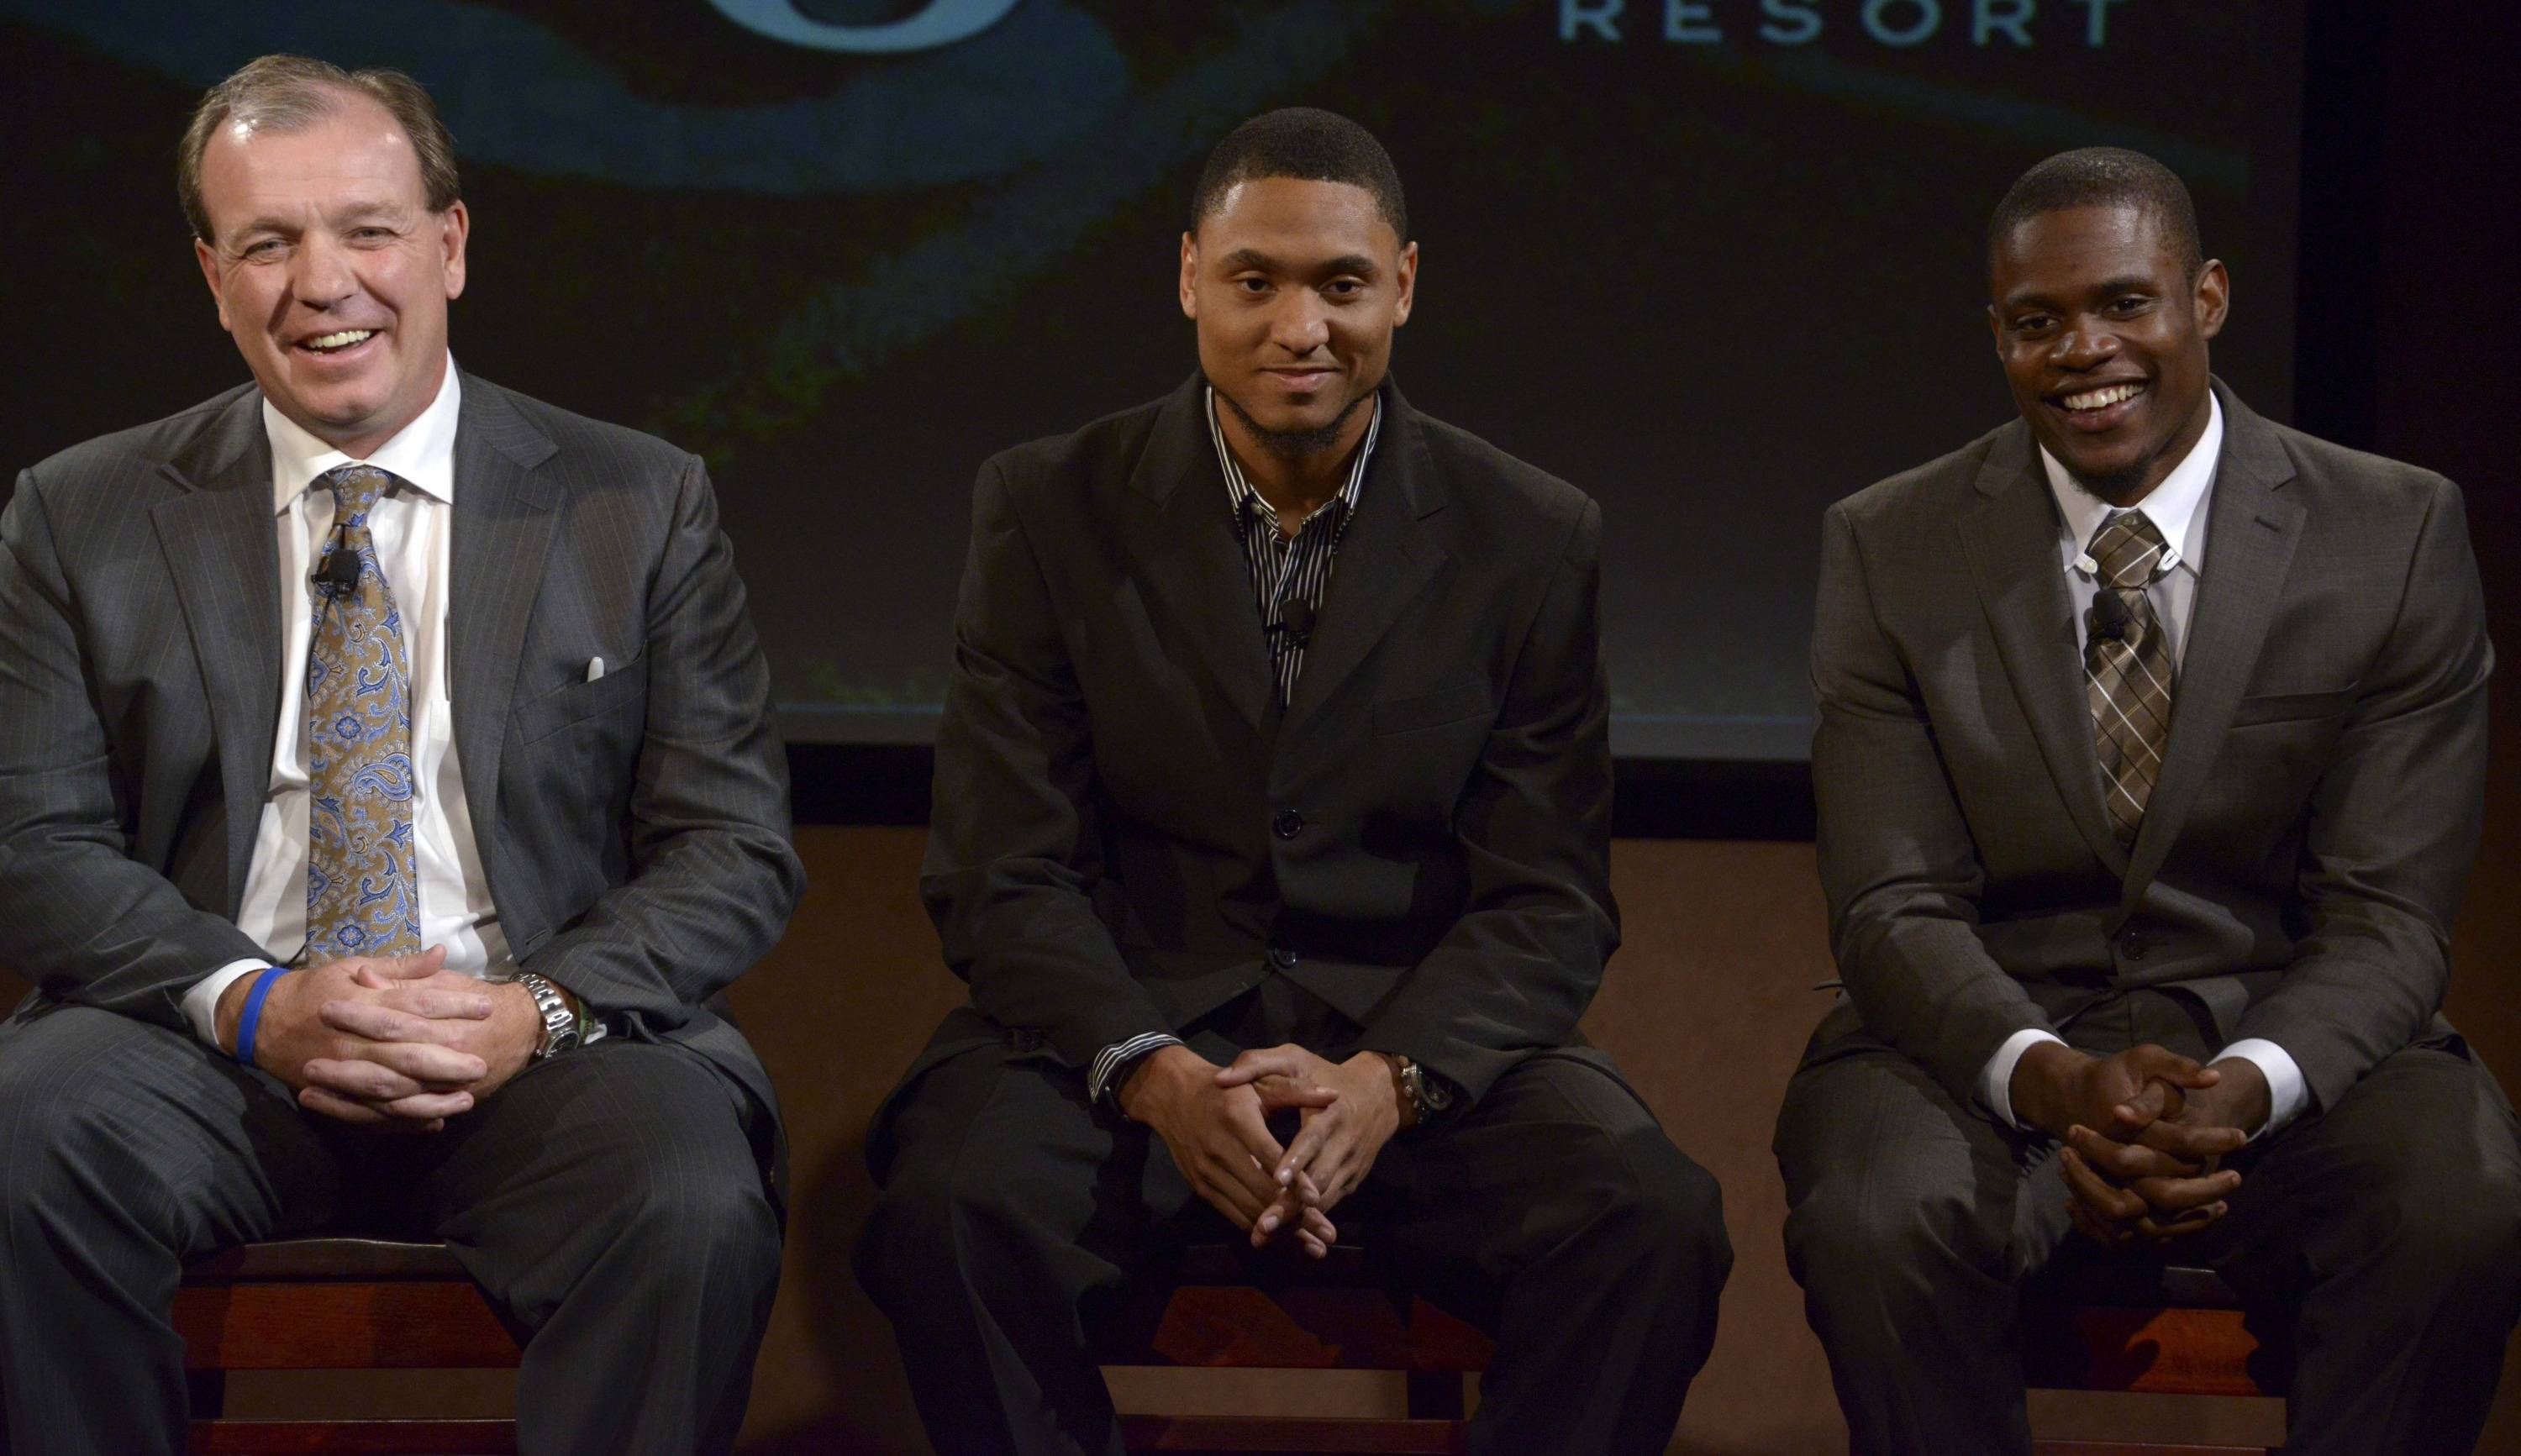 Florida State Seminoles coach Jimbo Fisher (left) and receiver Rashad Greene (center) and defensive back Lamarcus Joyner at a press conference for the 2014 BCS National Championship at ESPN Zone Downtown Disney. Mandatory Credit: Kirby Lee-USA TODAY Sports